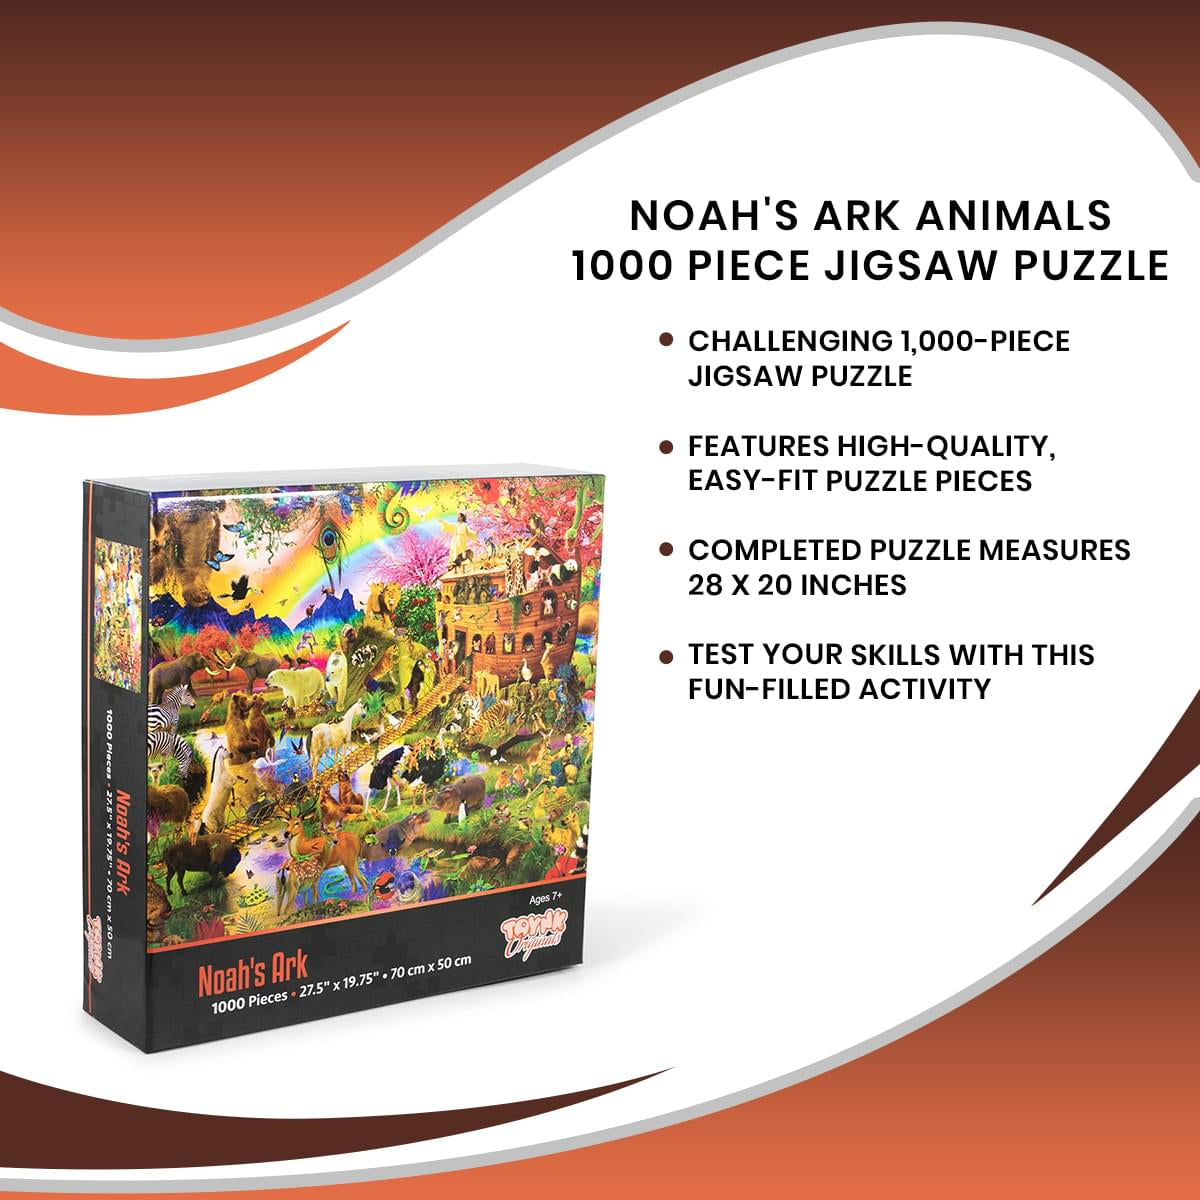 Noah's Ark Animals 1000 Piece Jigsaw Puzzle